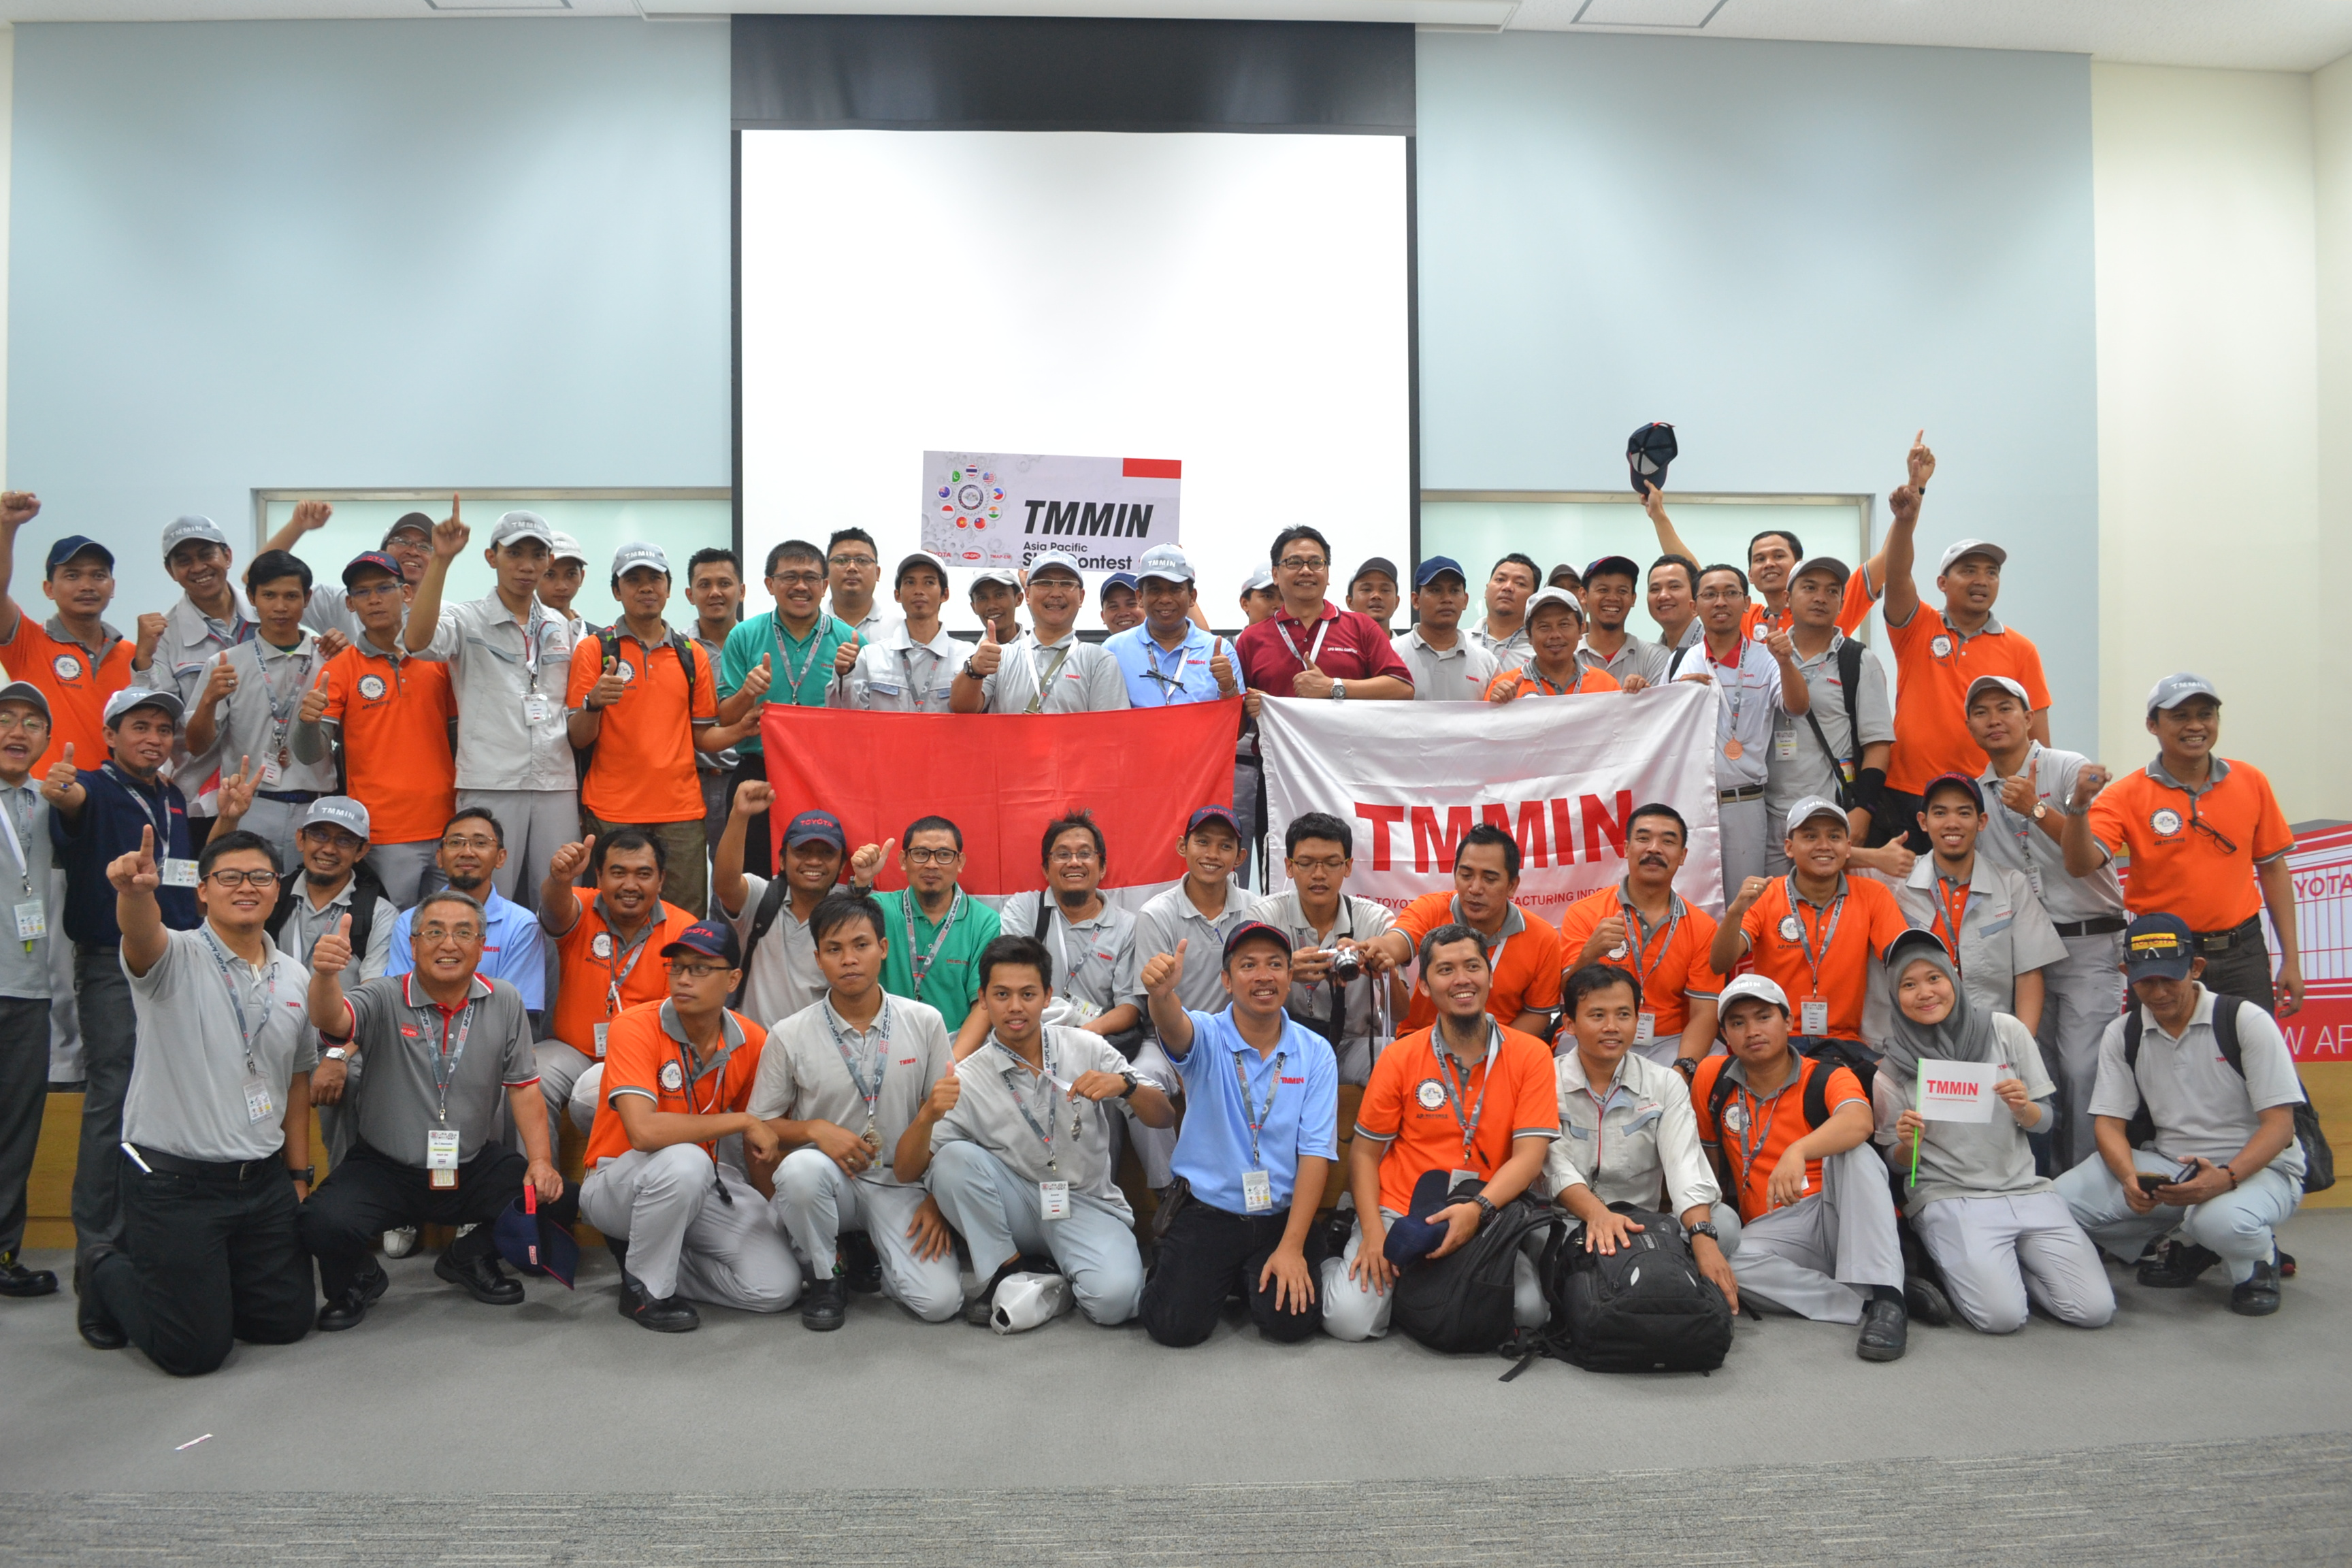 TMMIN Representative in Asia Pacific Skill Contest 2015